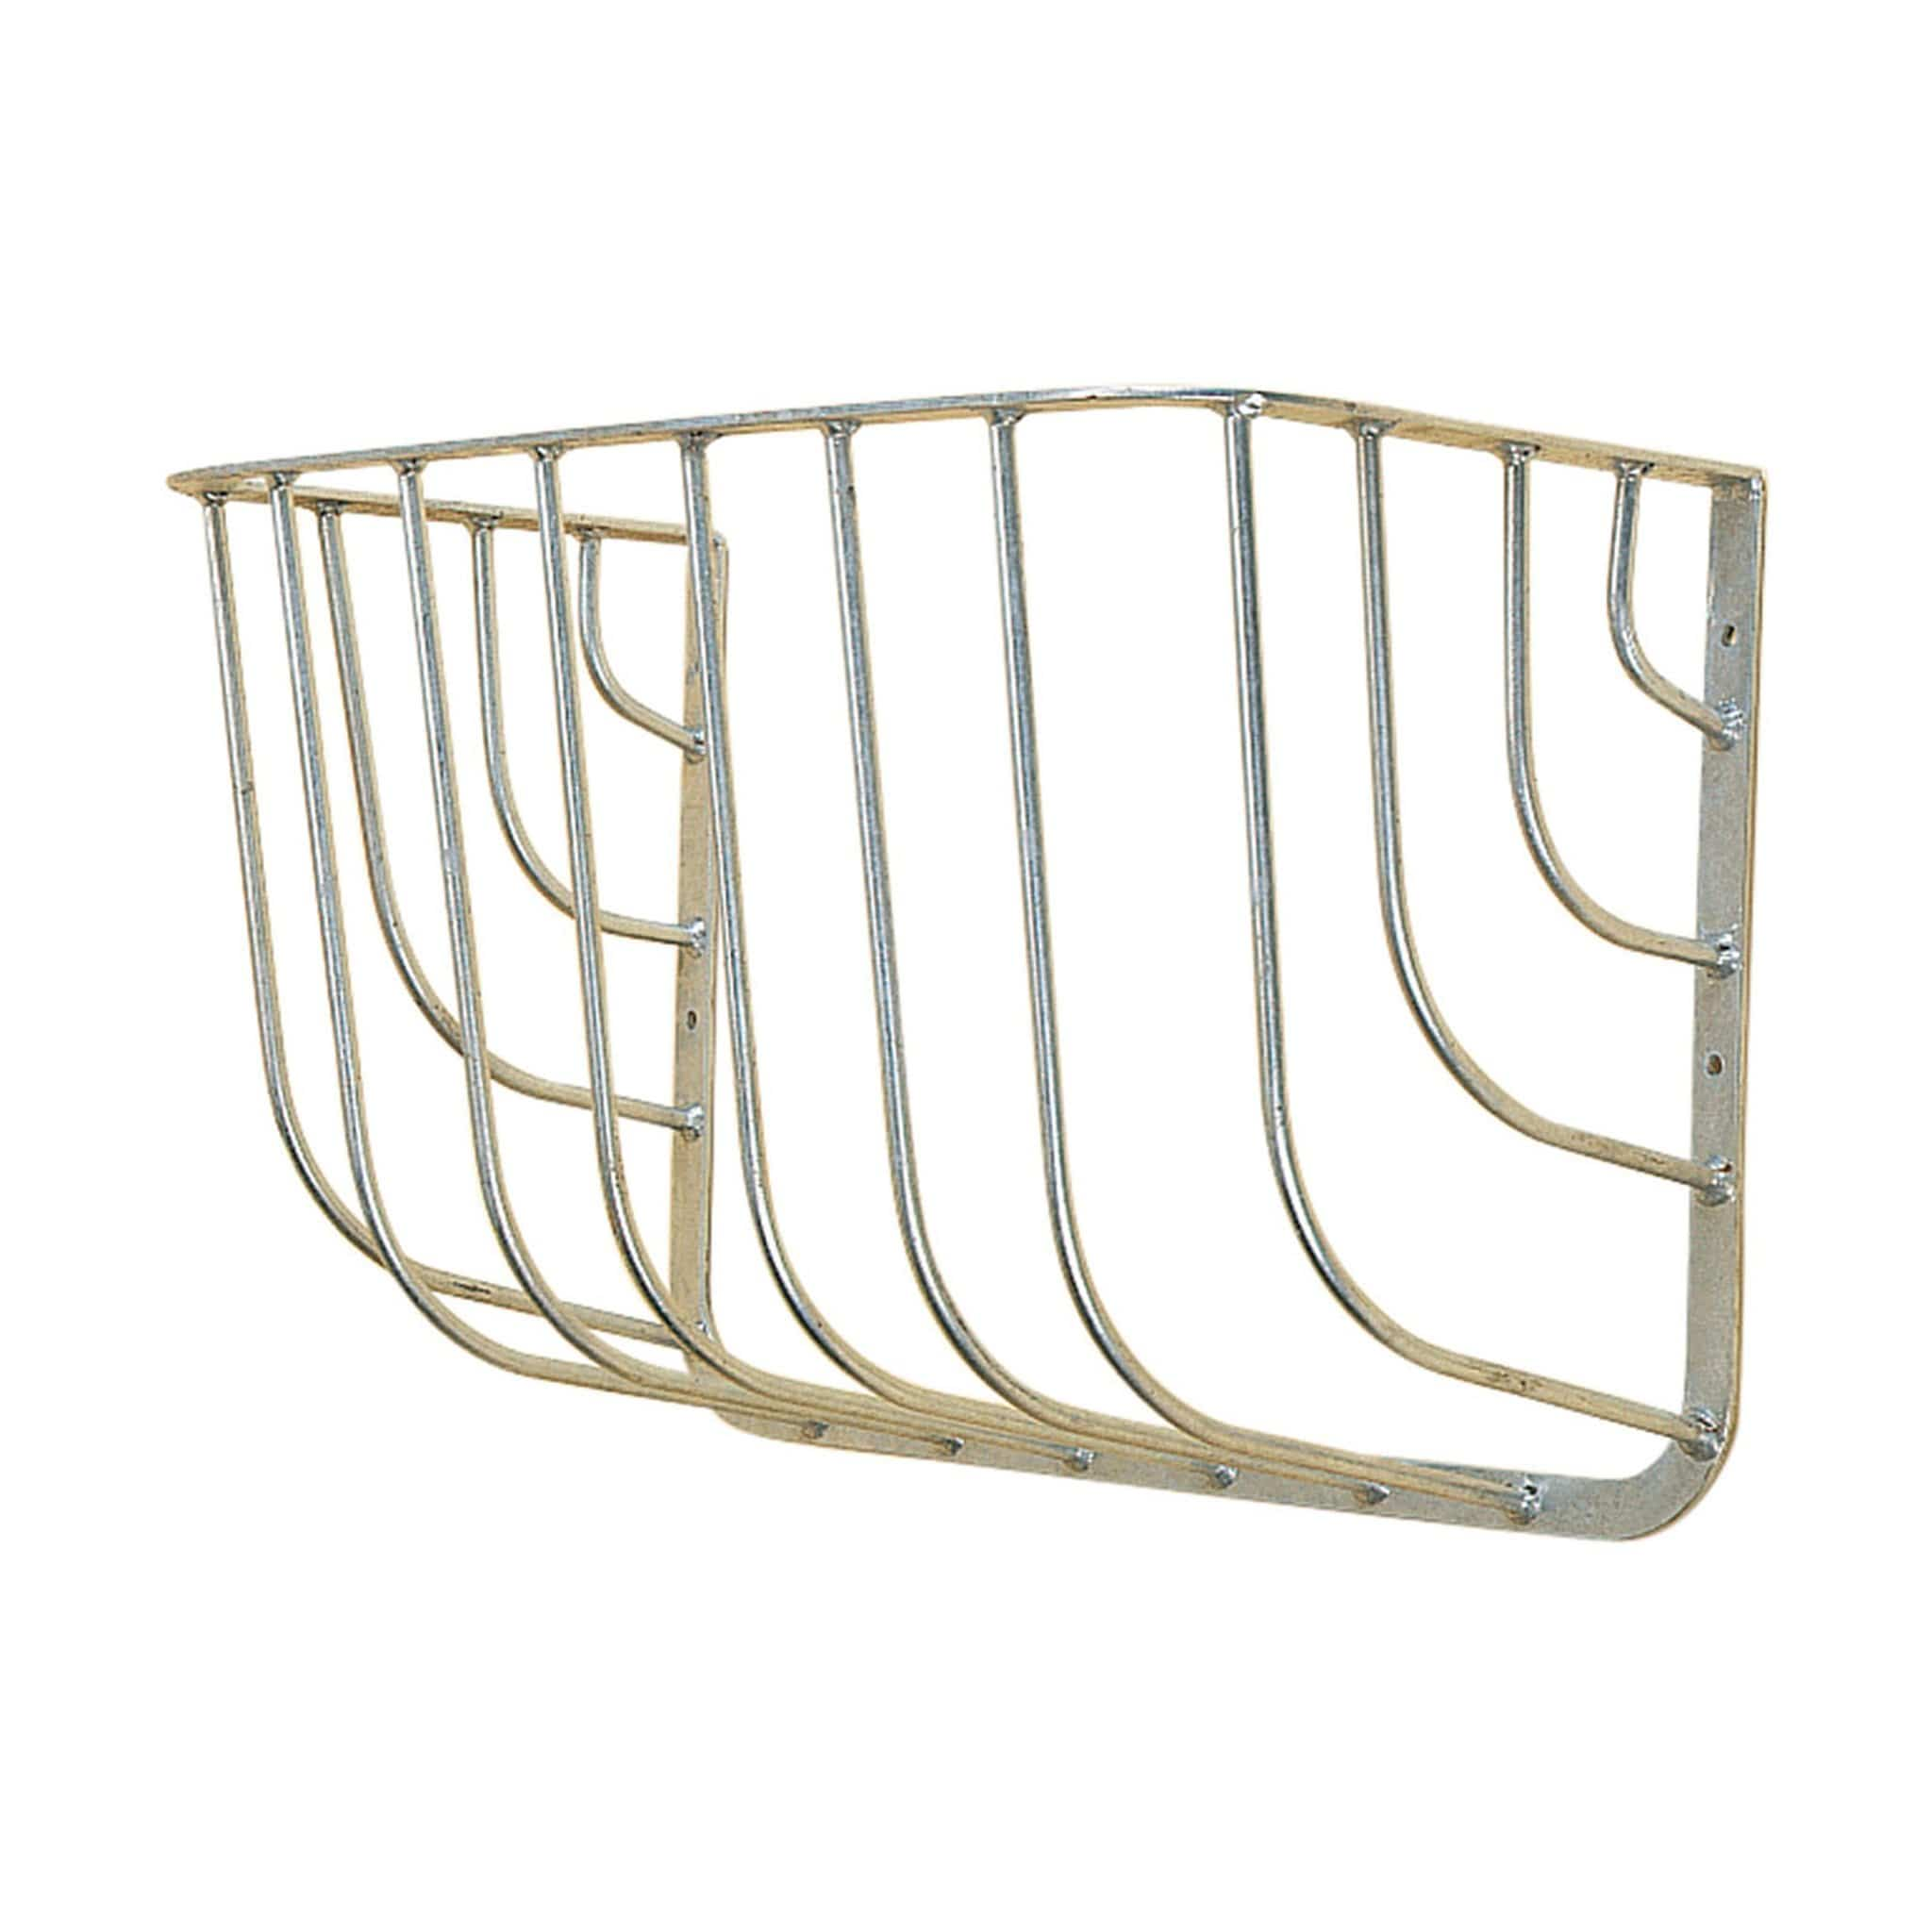 Stubbs Traditional Wall Hay Rack in Silver 7223